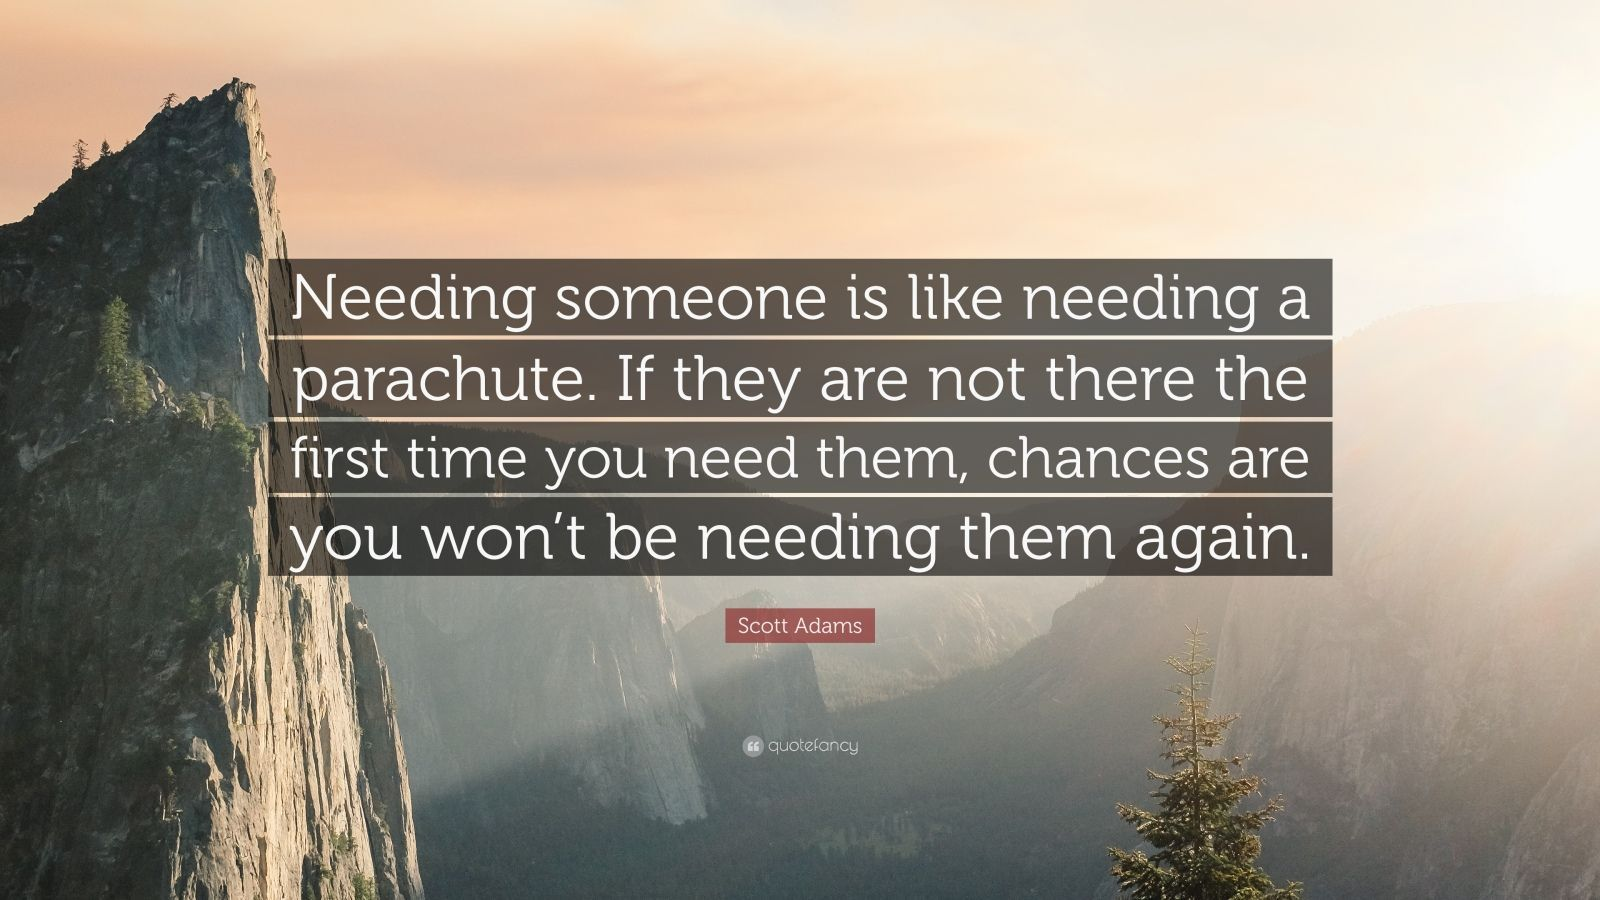 Scott Adams Quote Needing Someone Is Like Needing A Parachute If They Are Not There The First Time Yo Inspirational Quotes Rick Warren Quotes Startup Quotes